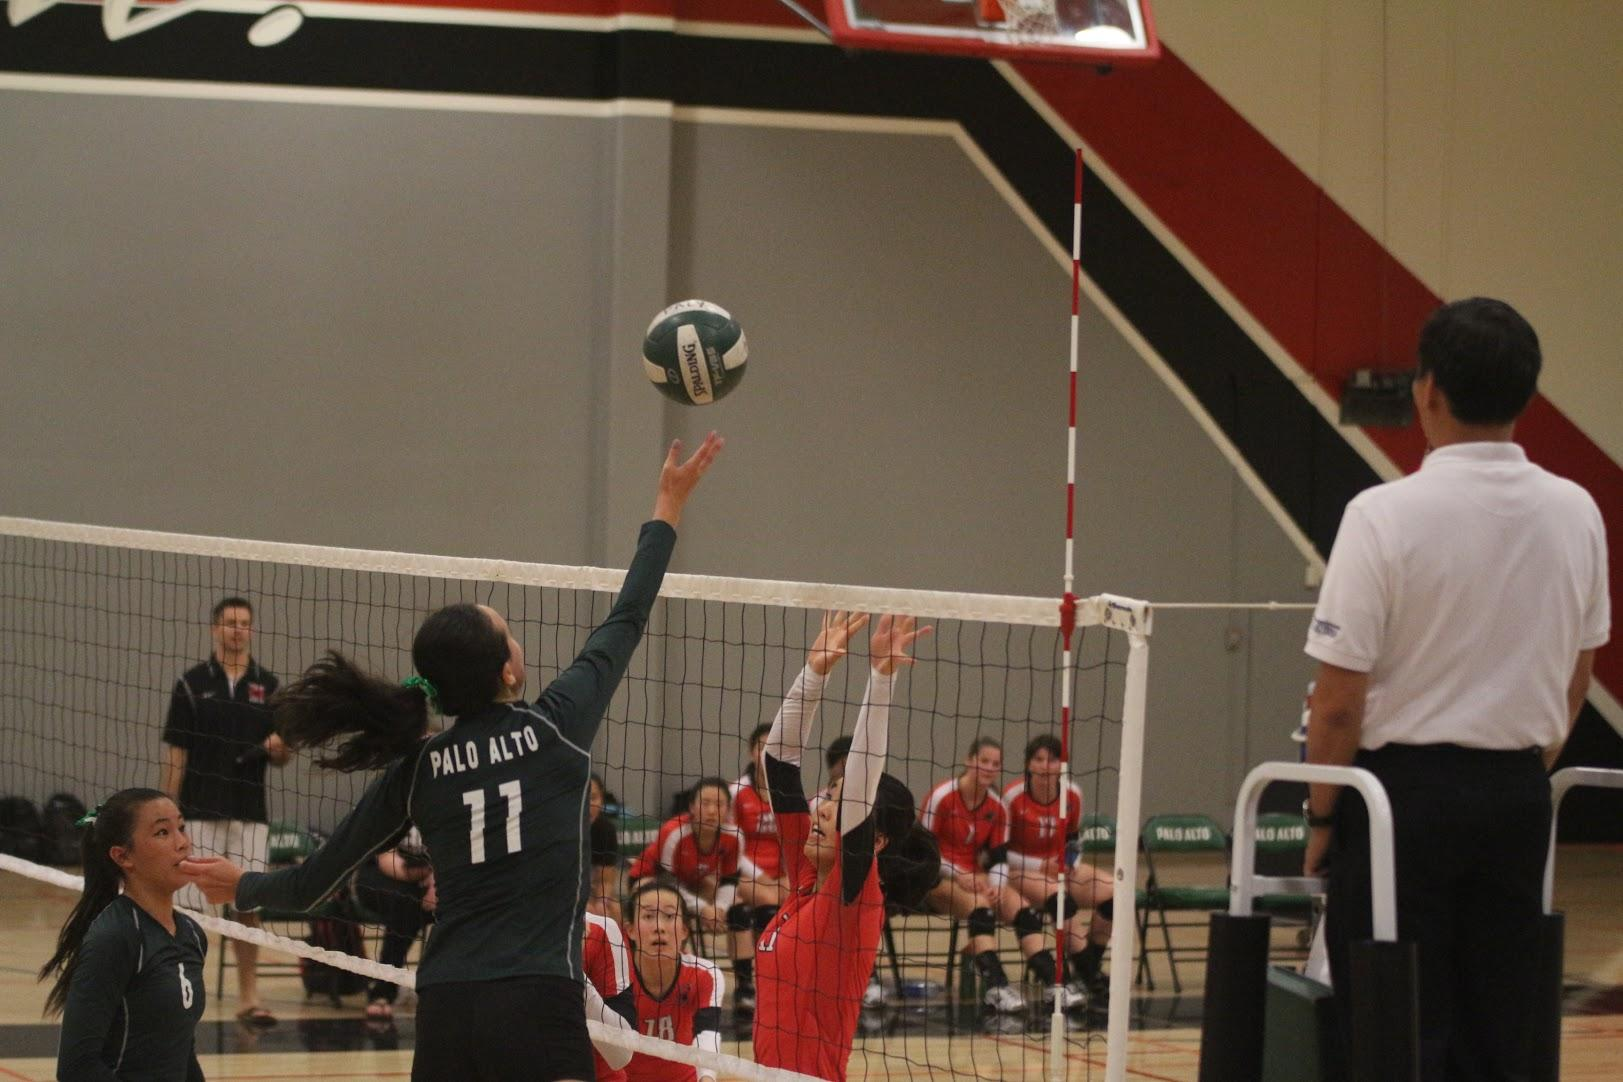 Senior middle blocker Claire Dennis tips the ball over the net. According to head coach Jekara Wilson, Dennis played outstandingly on Thursday against Paly's cross-town rivals, the Gunn Titans.